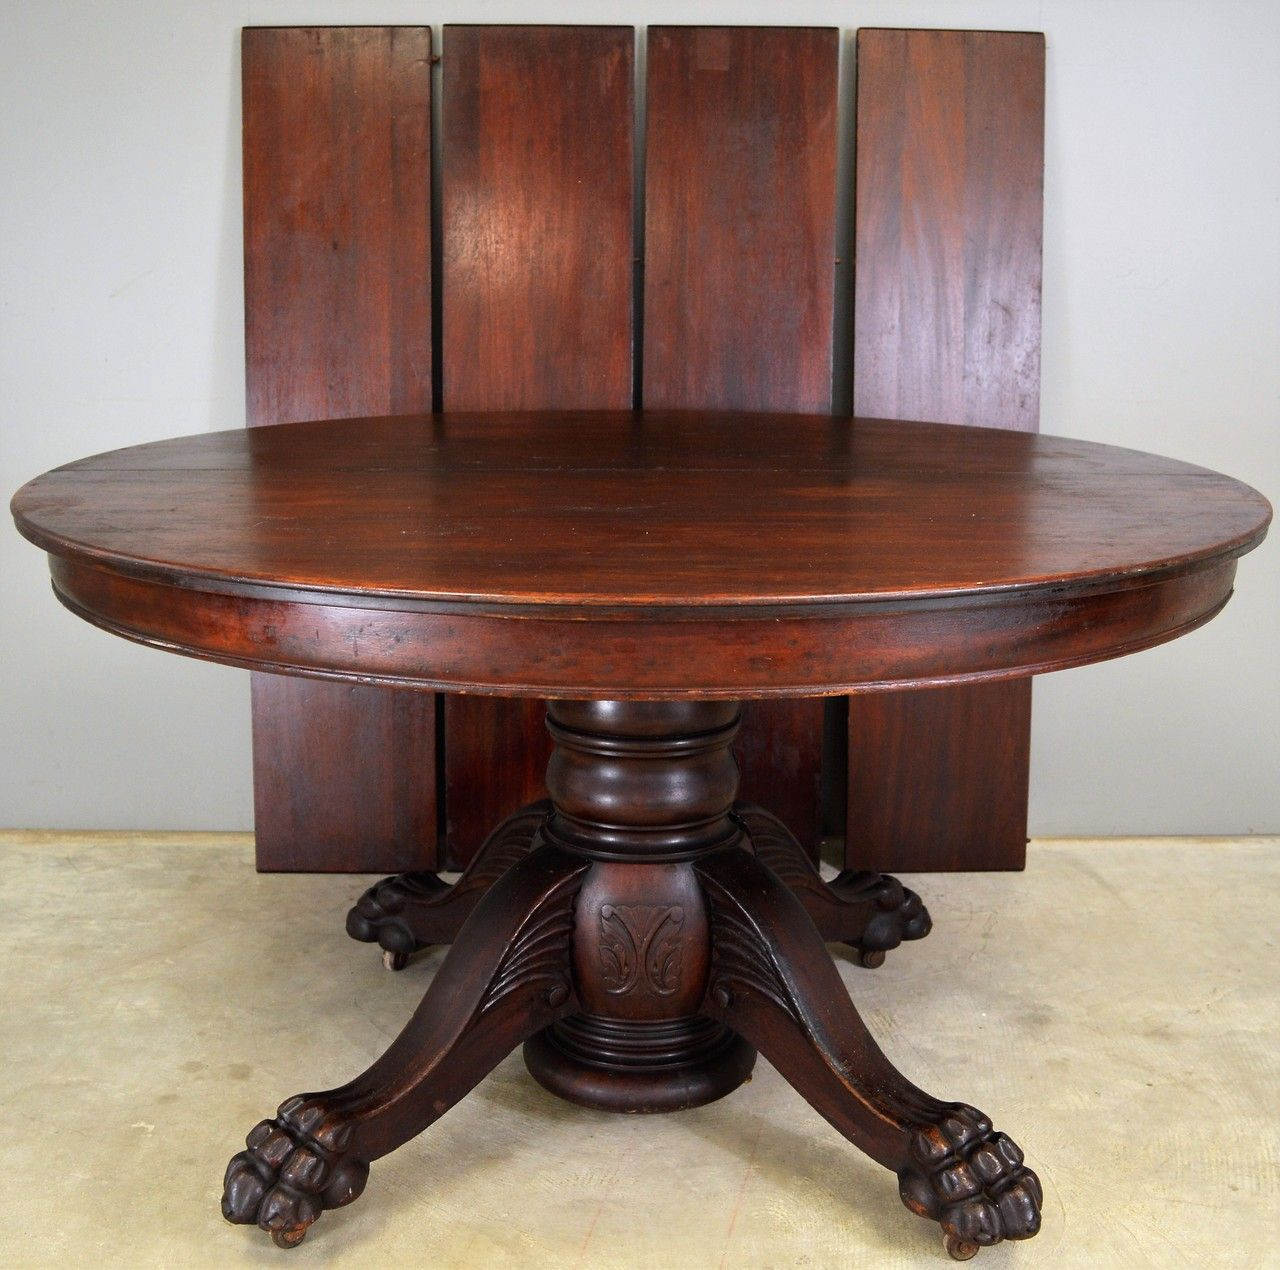 17808 Victorian Carved Mahogany Banquet Table Opens Over 10 Feet In 2020 Table Banquet Tables Dining Table